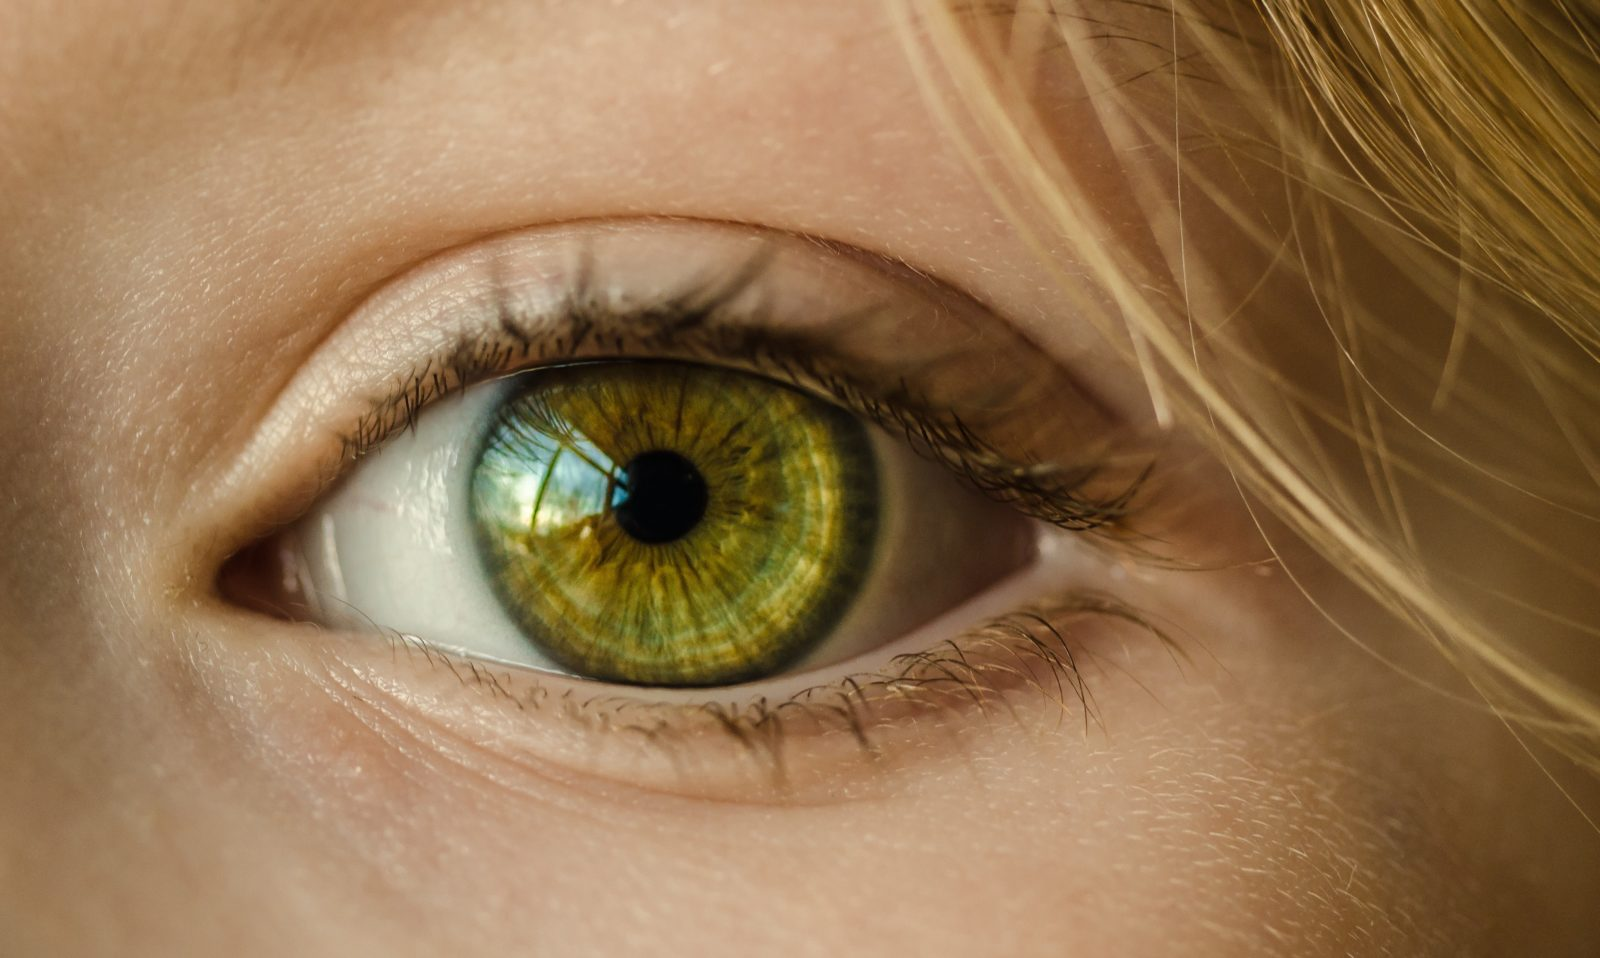 Why do I need a prescription for contact lenses?